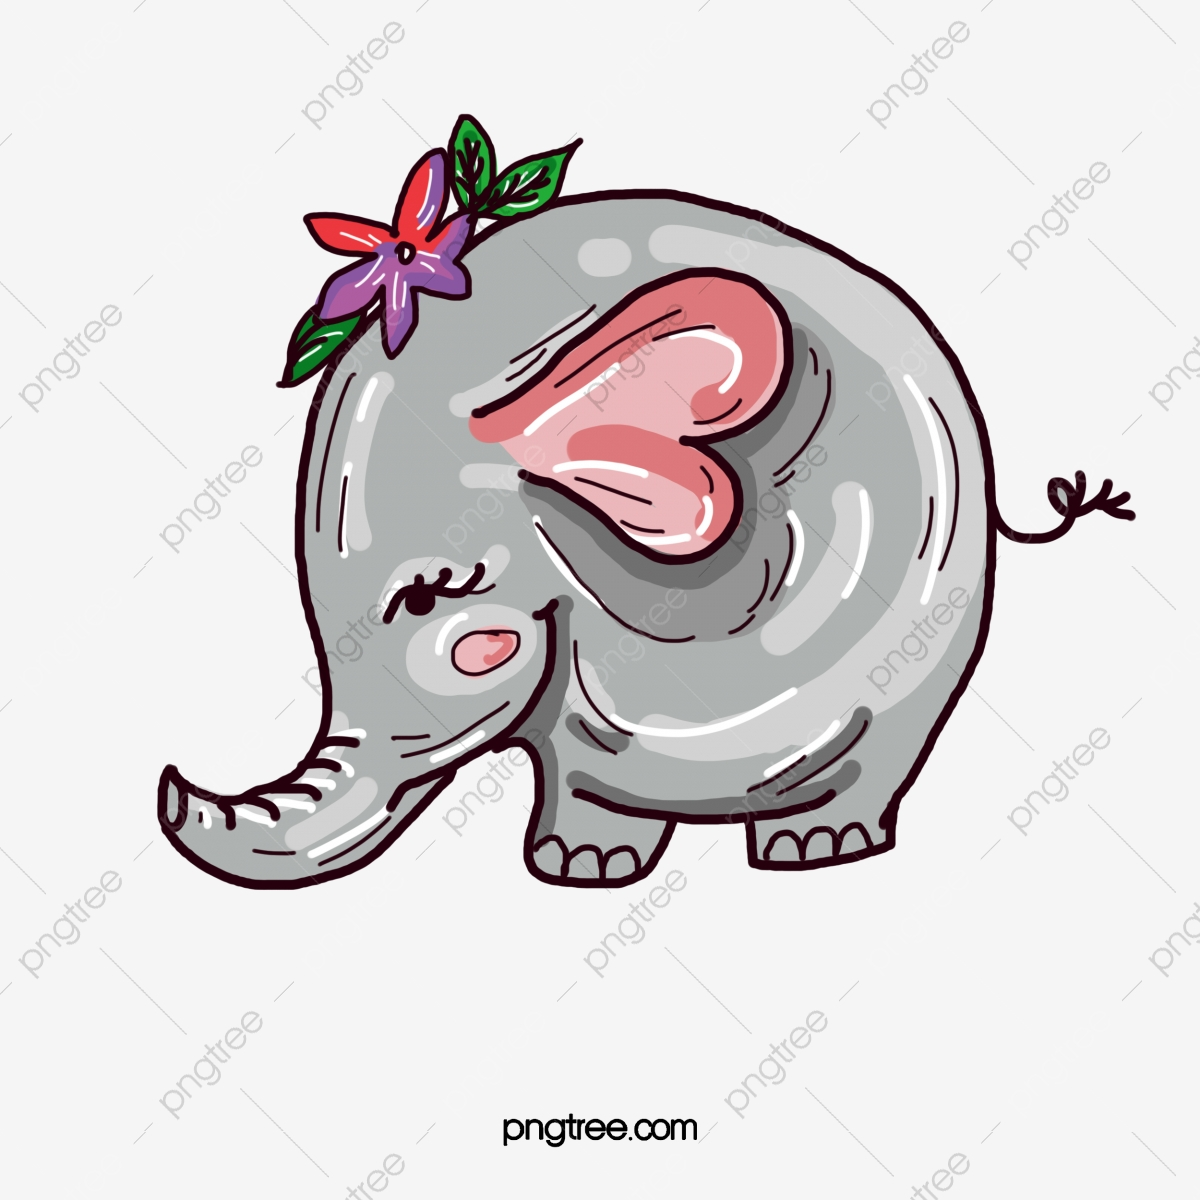 Drawing Baby Elephant Baby Clipart Elephant Clipart Gray Png Transparent Clipart Image And Psd File For Free Download Discover 103 free elephant drawing png images with transparent backgrounds. https pngtree com freepng drawing baby elephant 2184630 html